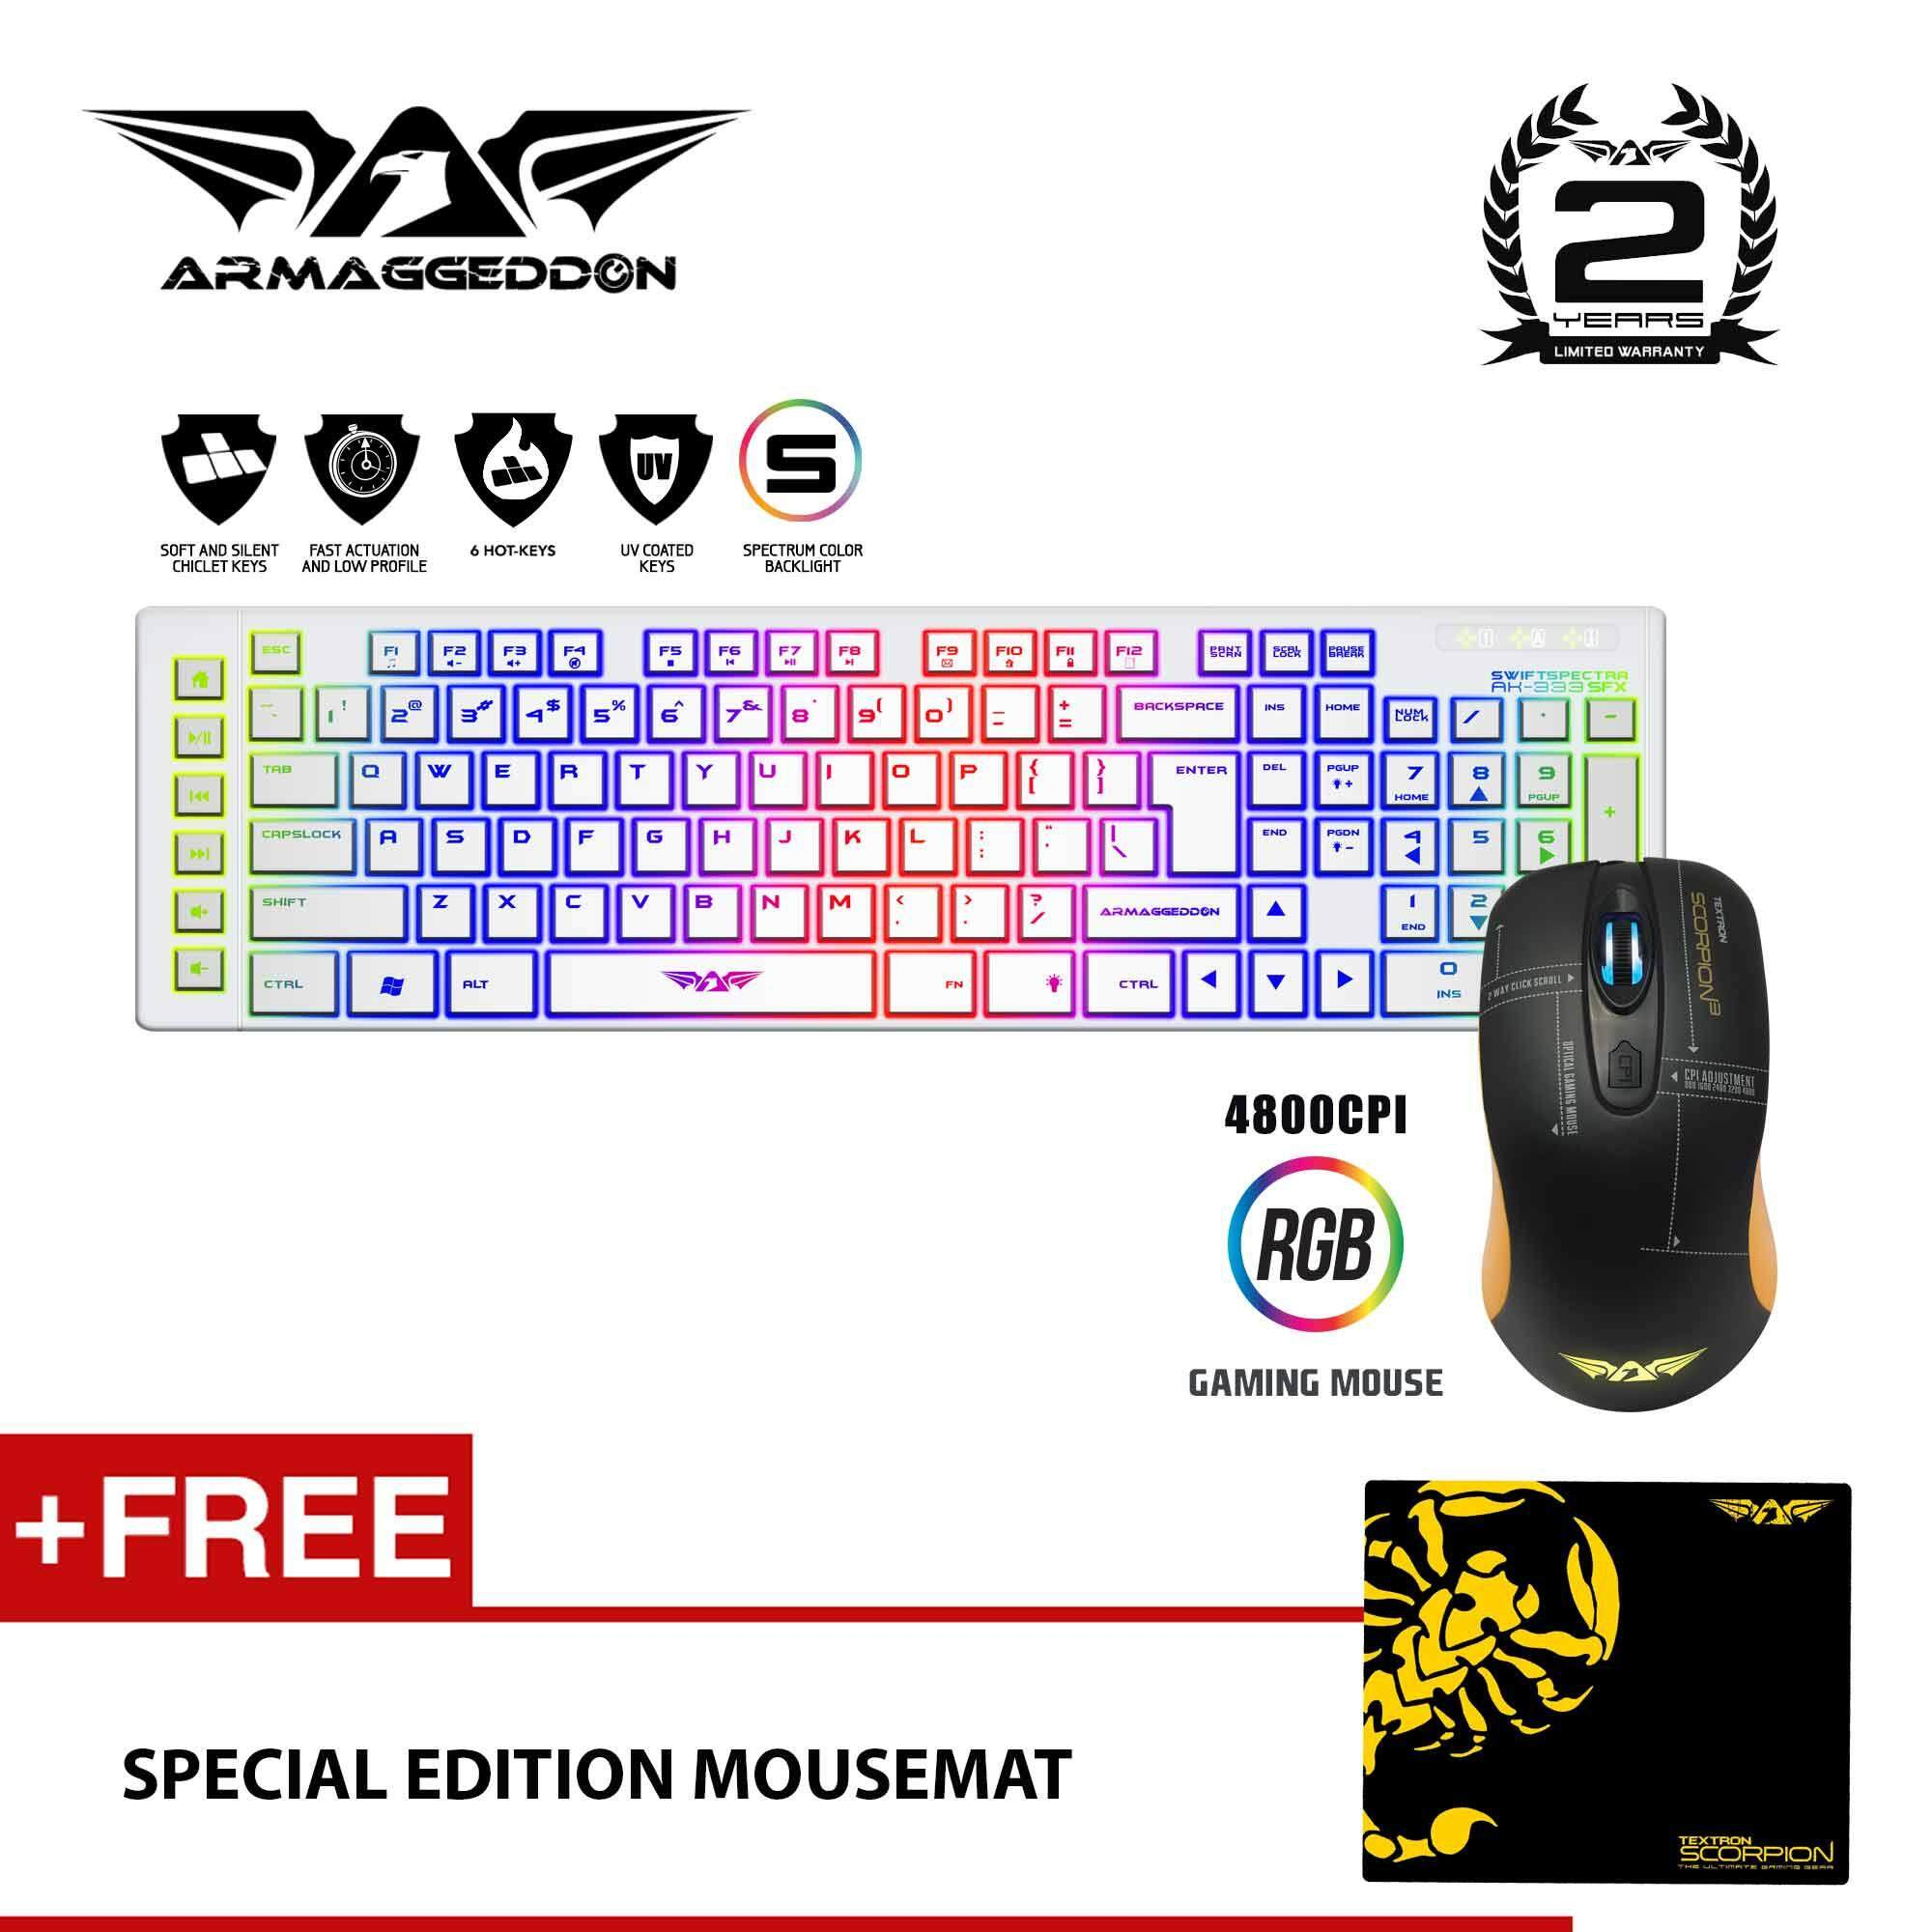 Armaggeddon Mka 7c Psychfalcon Mechanical Keyboard Blue Switch Malaysia Gaming 3c Ak 333sfx Scorpion 3 Mouse Combo Free Special Edition Mousemat By